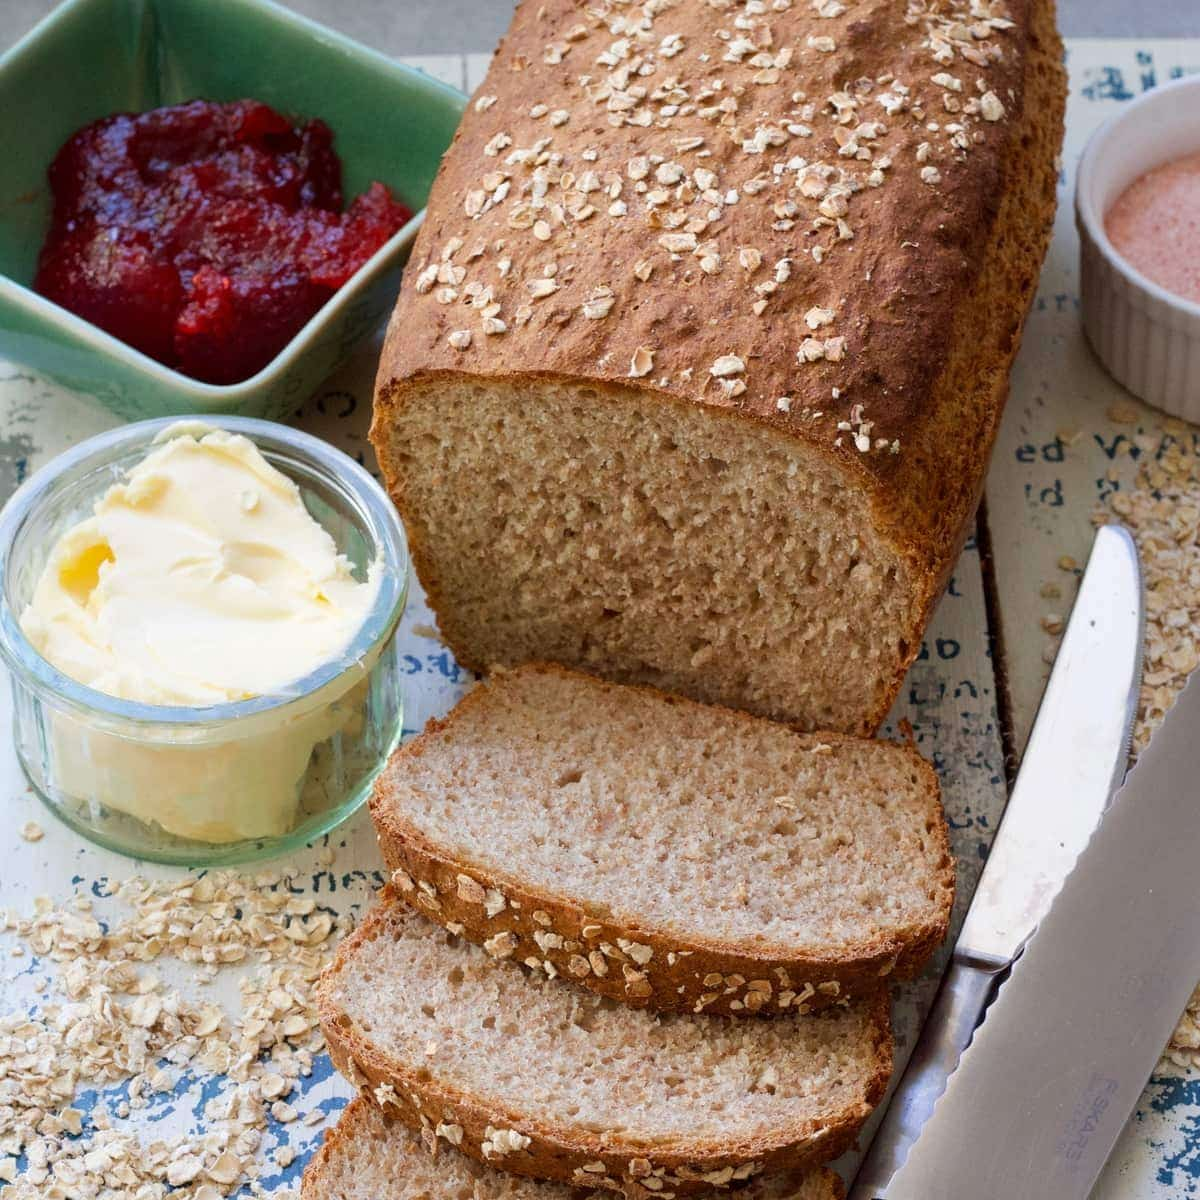 Bread with couple slices cut off, butter, jam & knives.